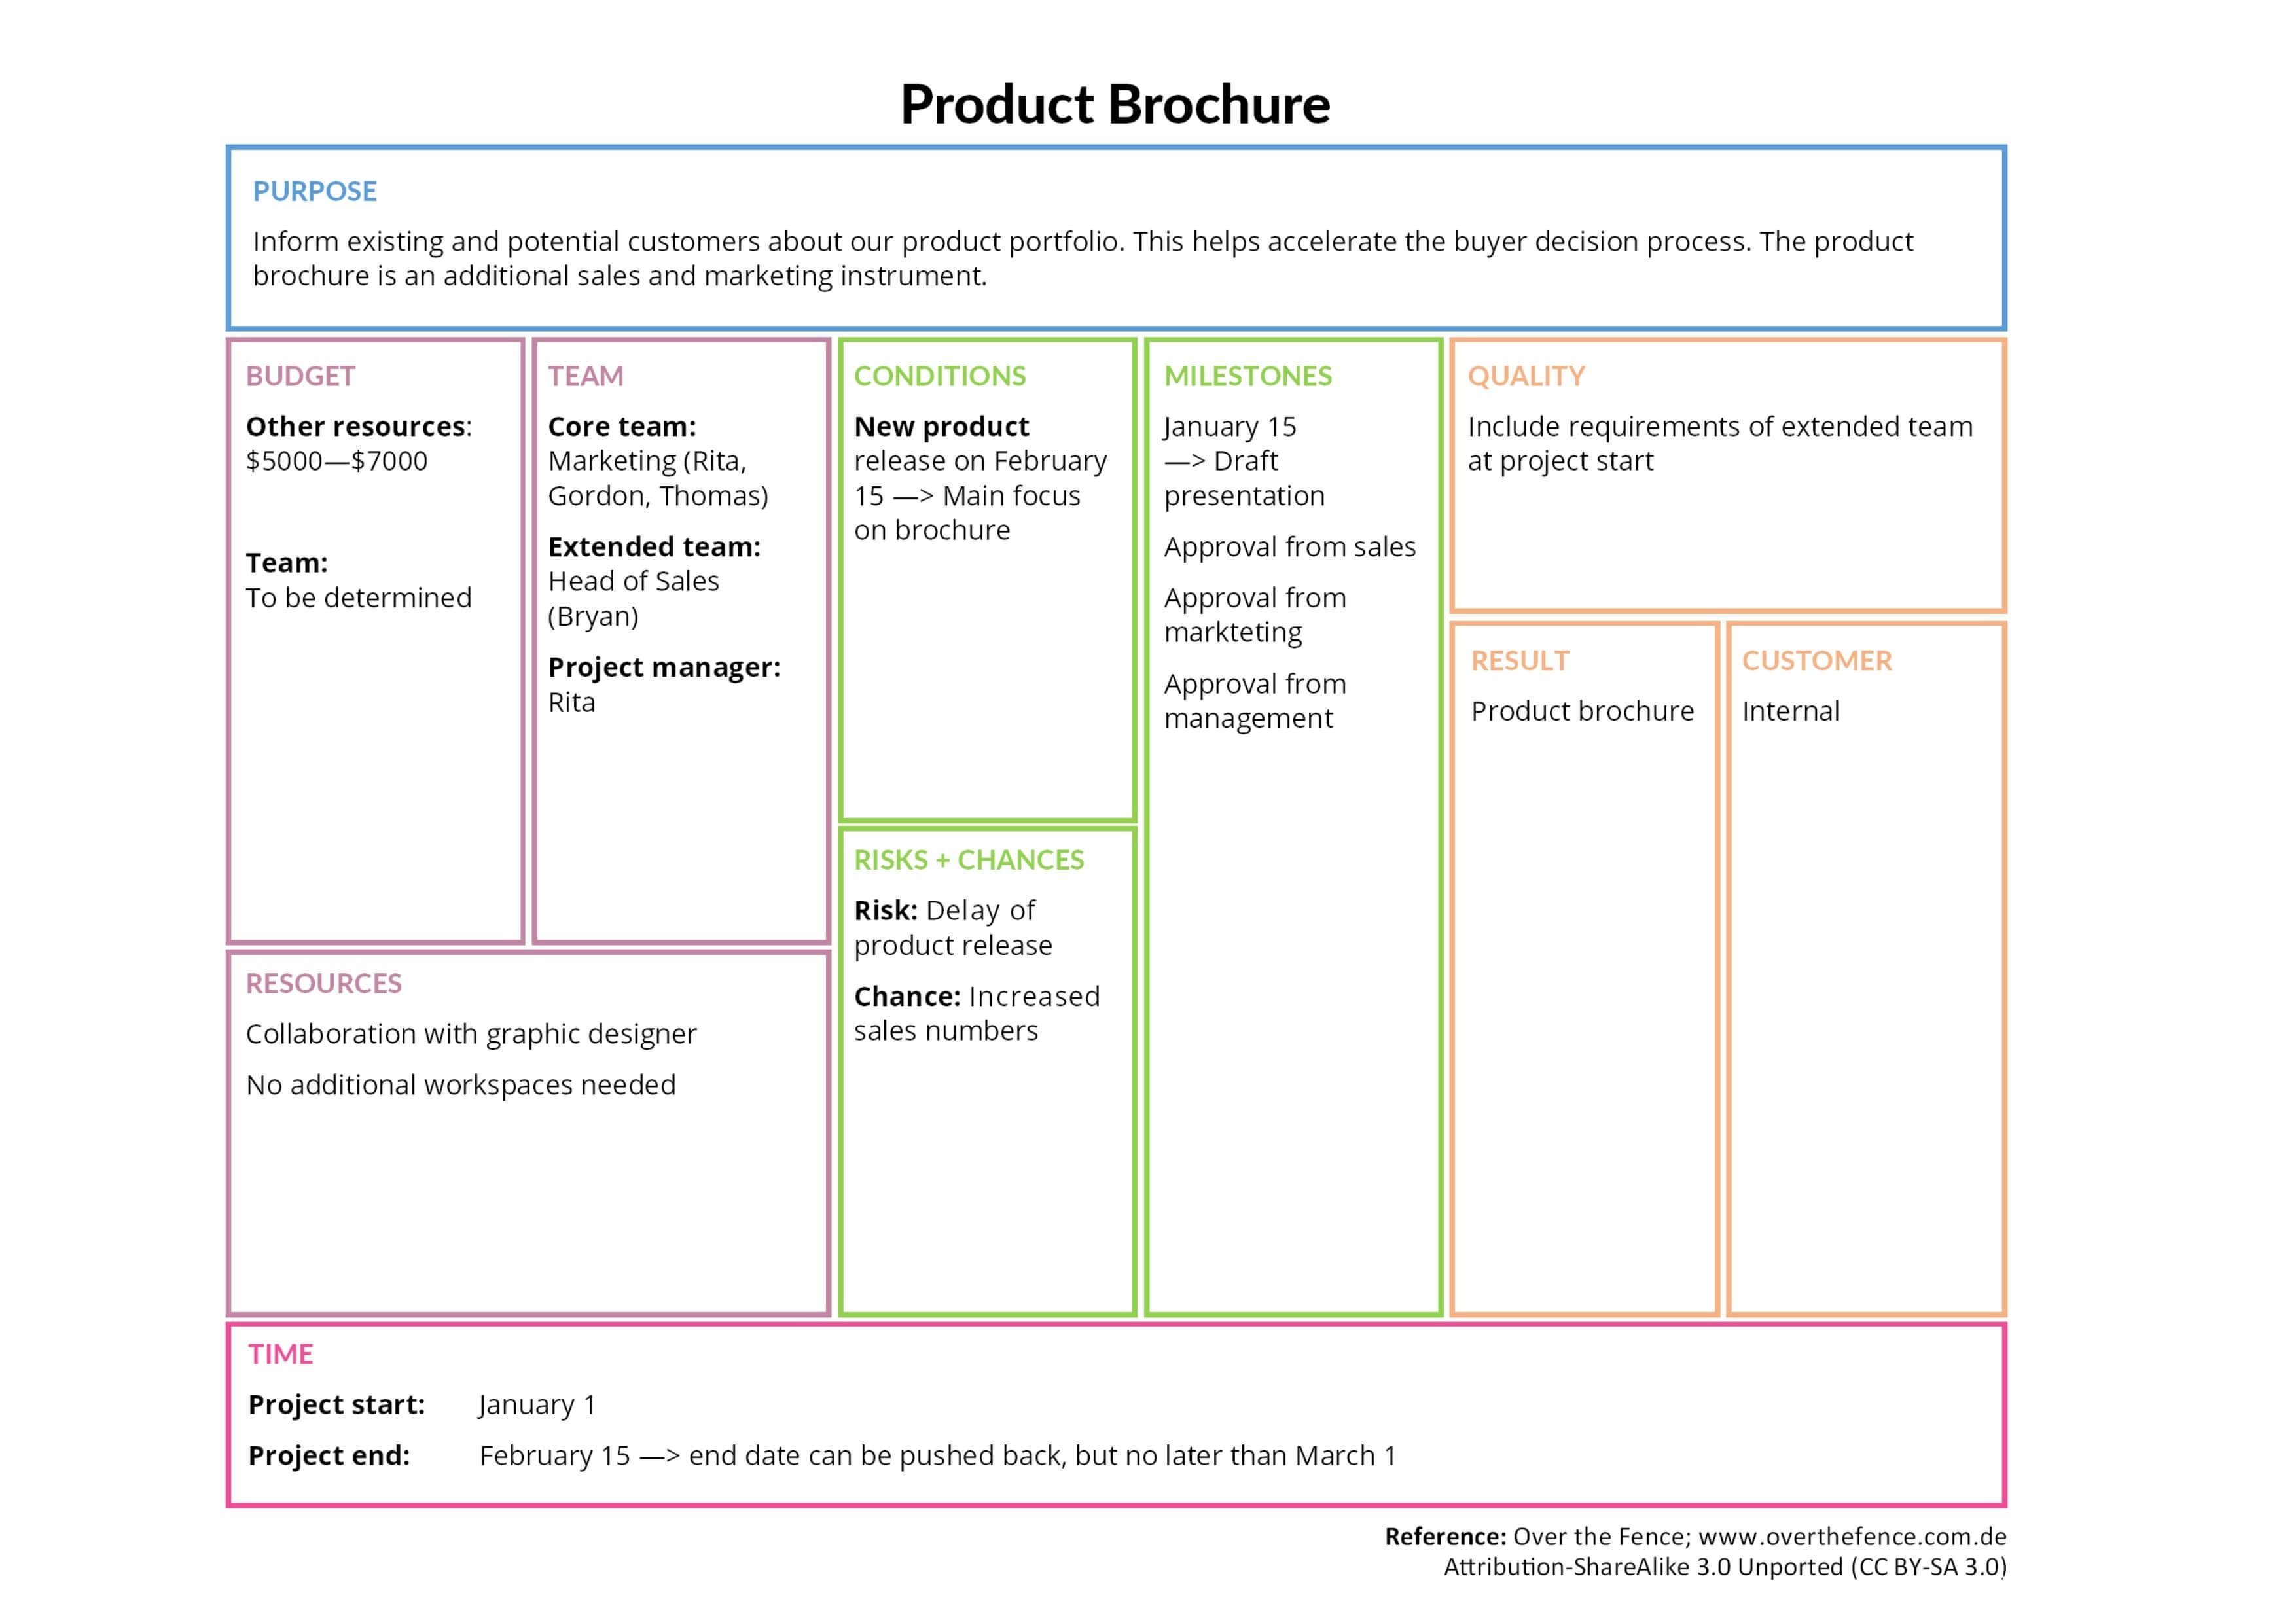 Project Canvas: Developing a product brochure